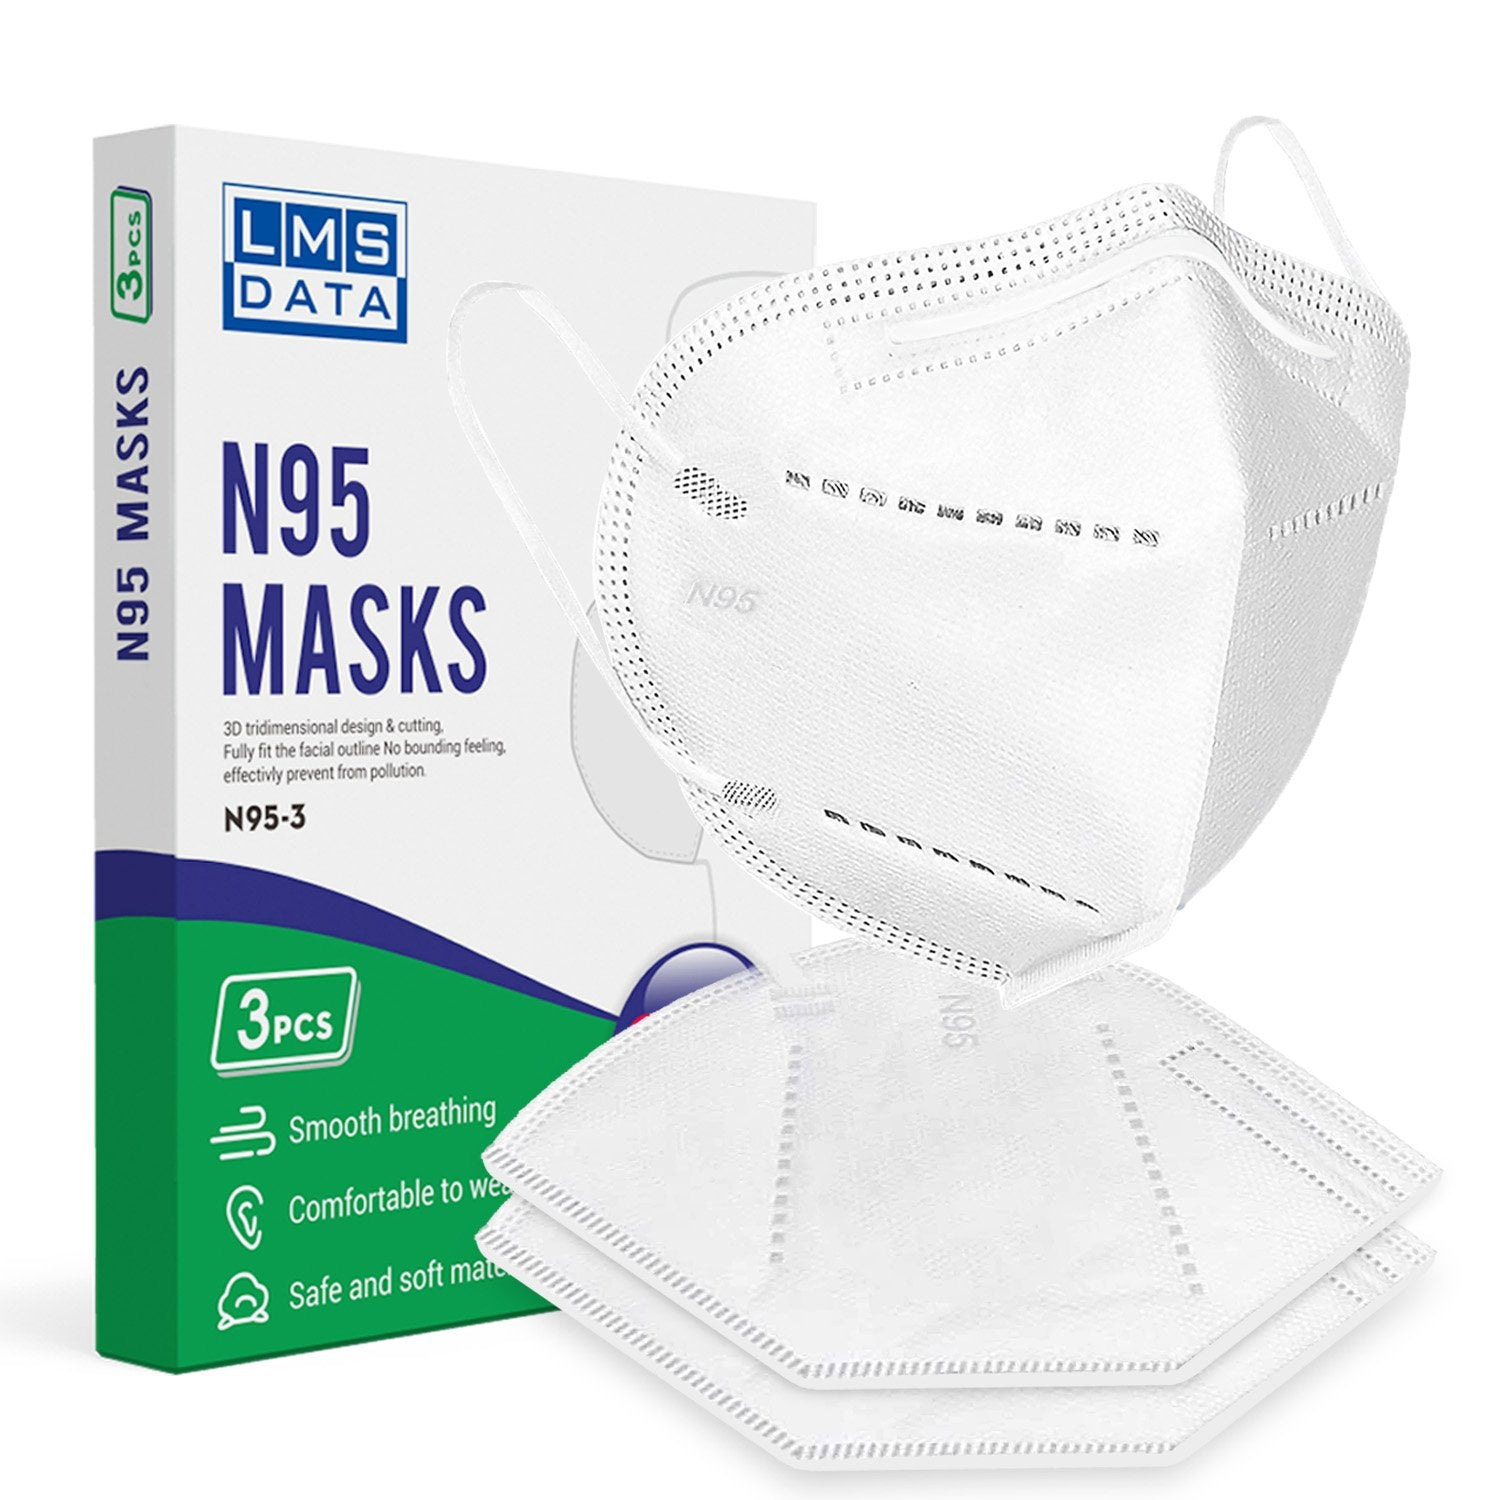 N95 Mask (Box of 3)